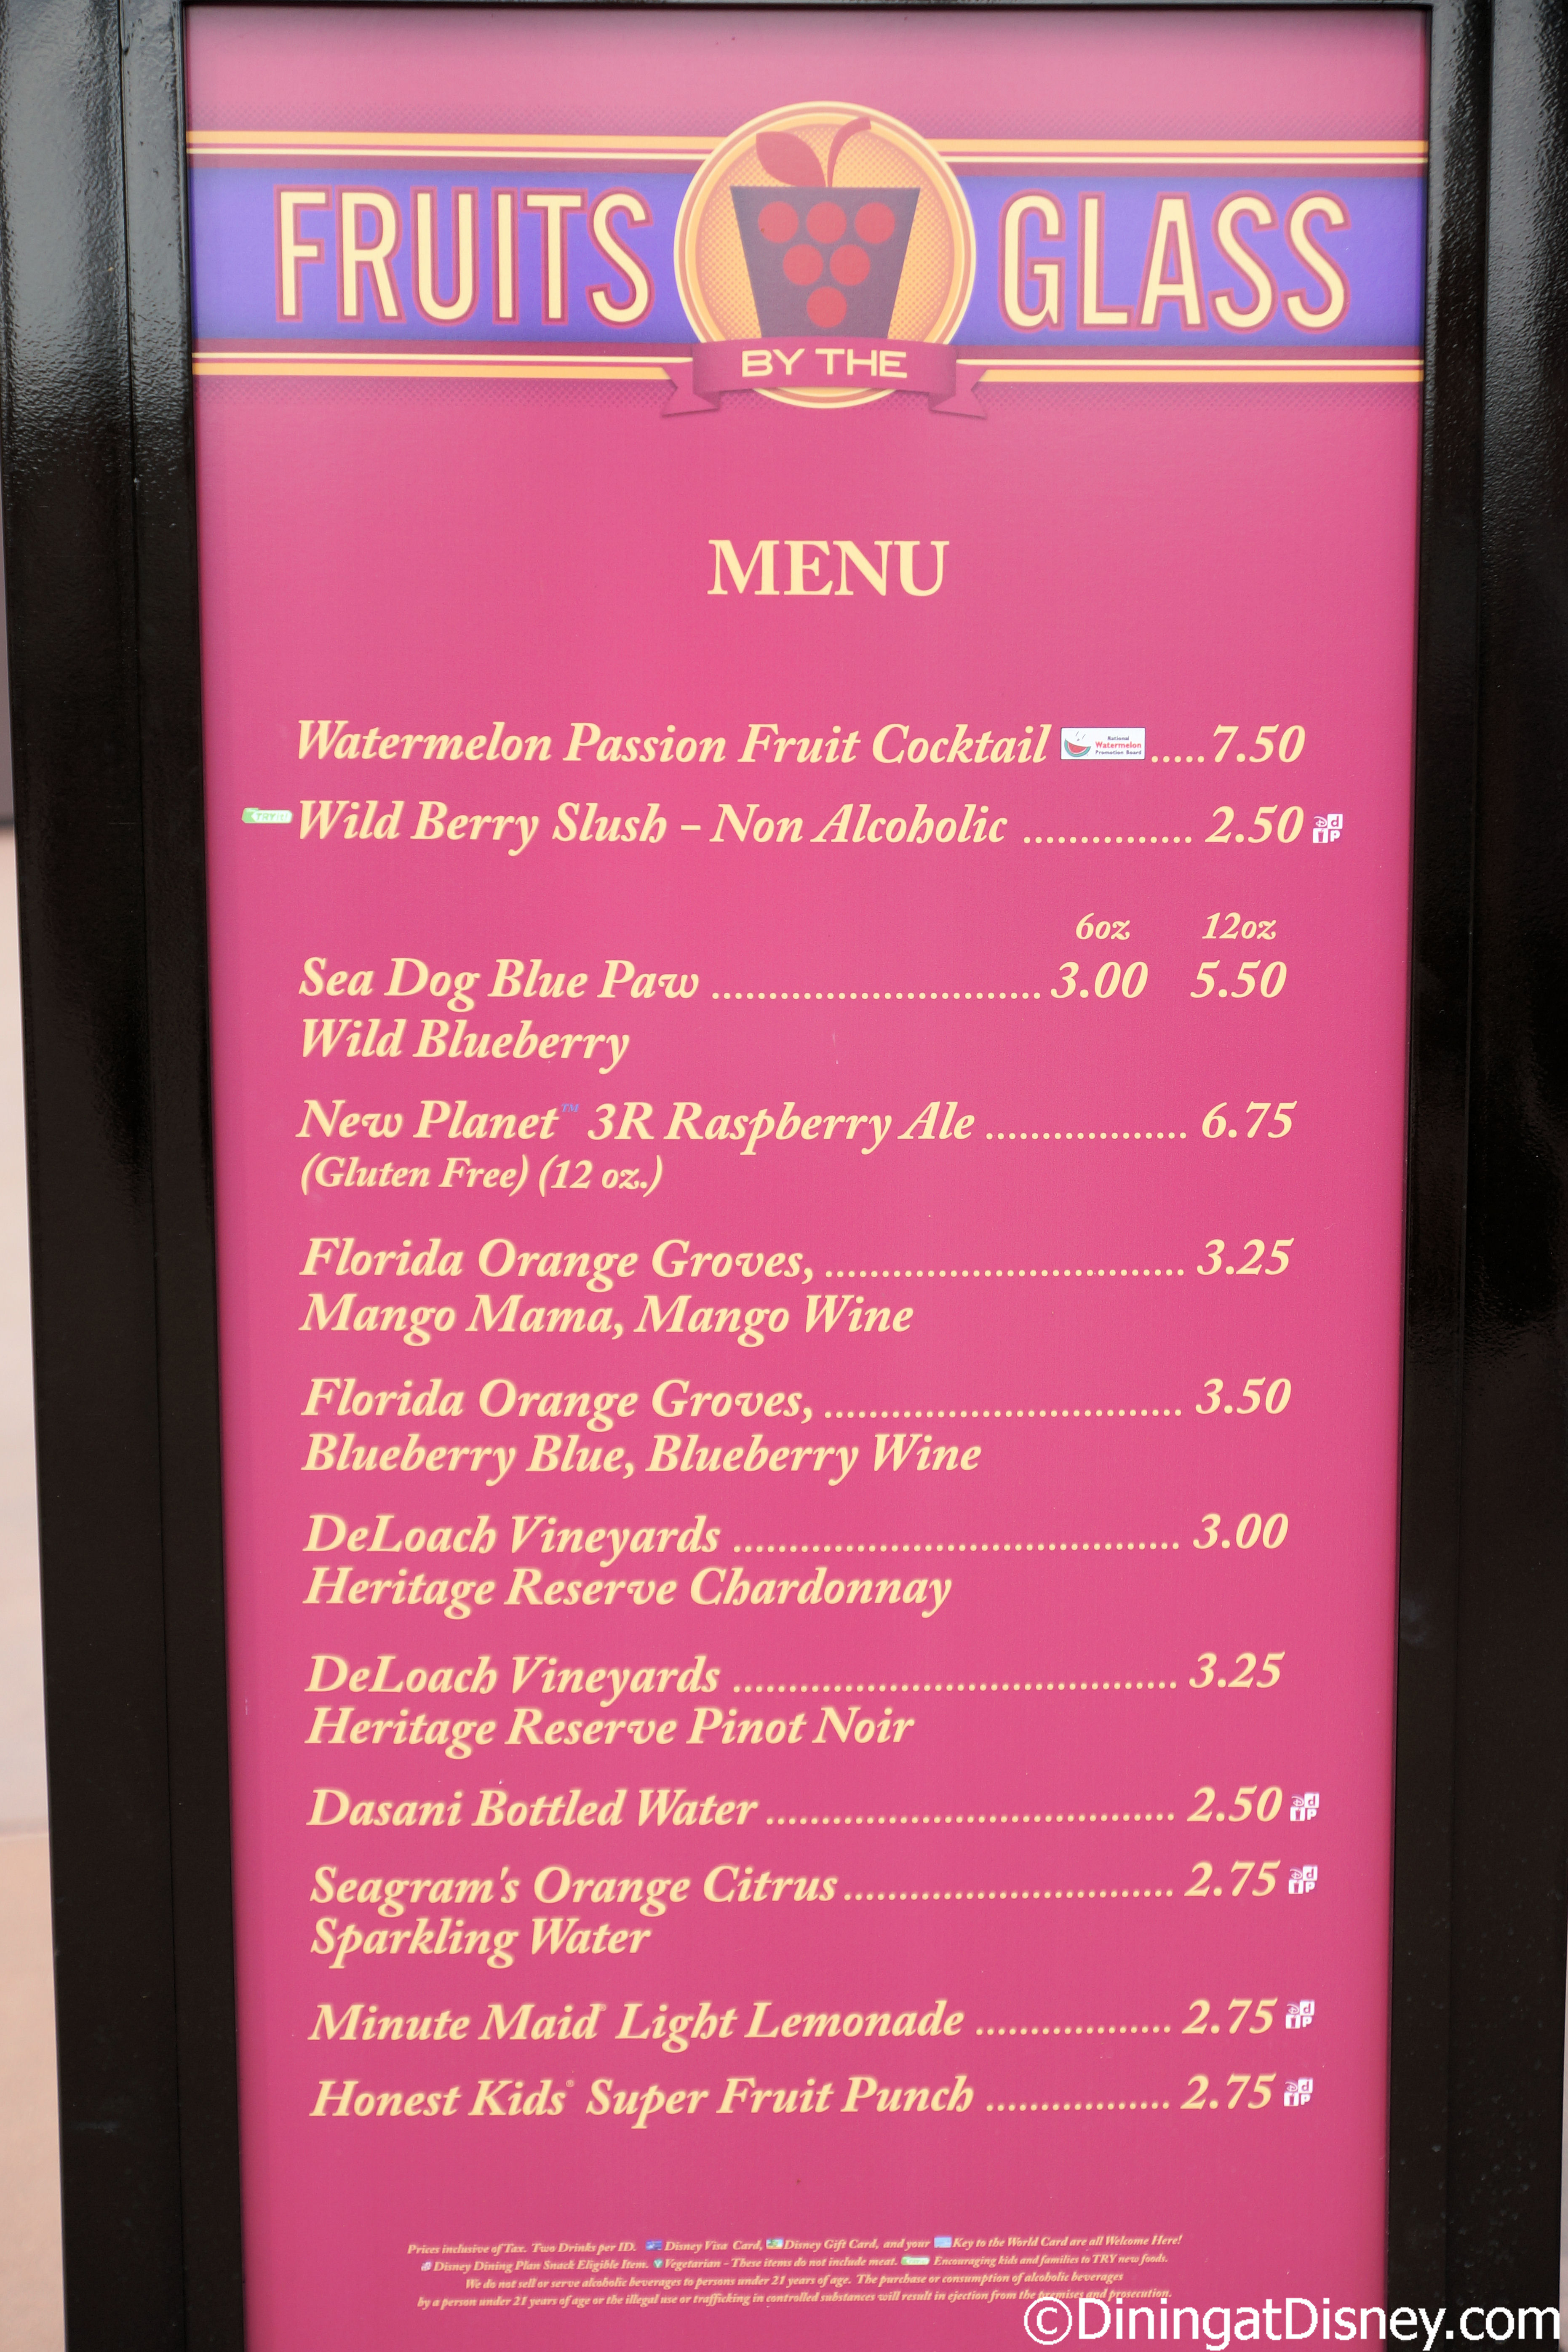 Fruits by the Glass menu